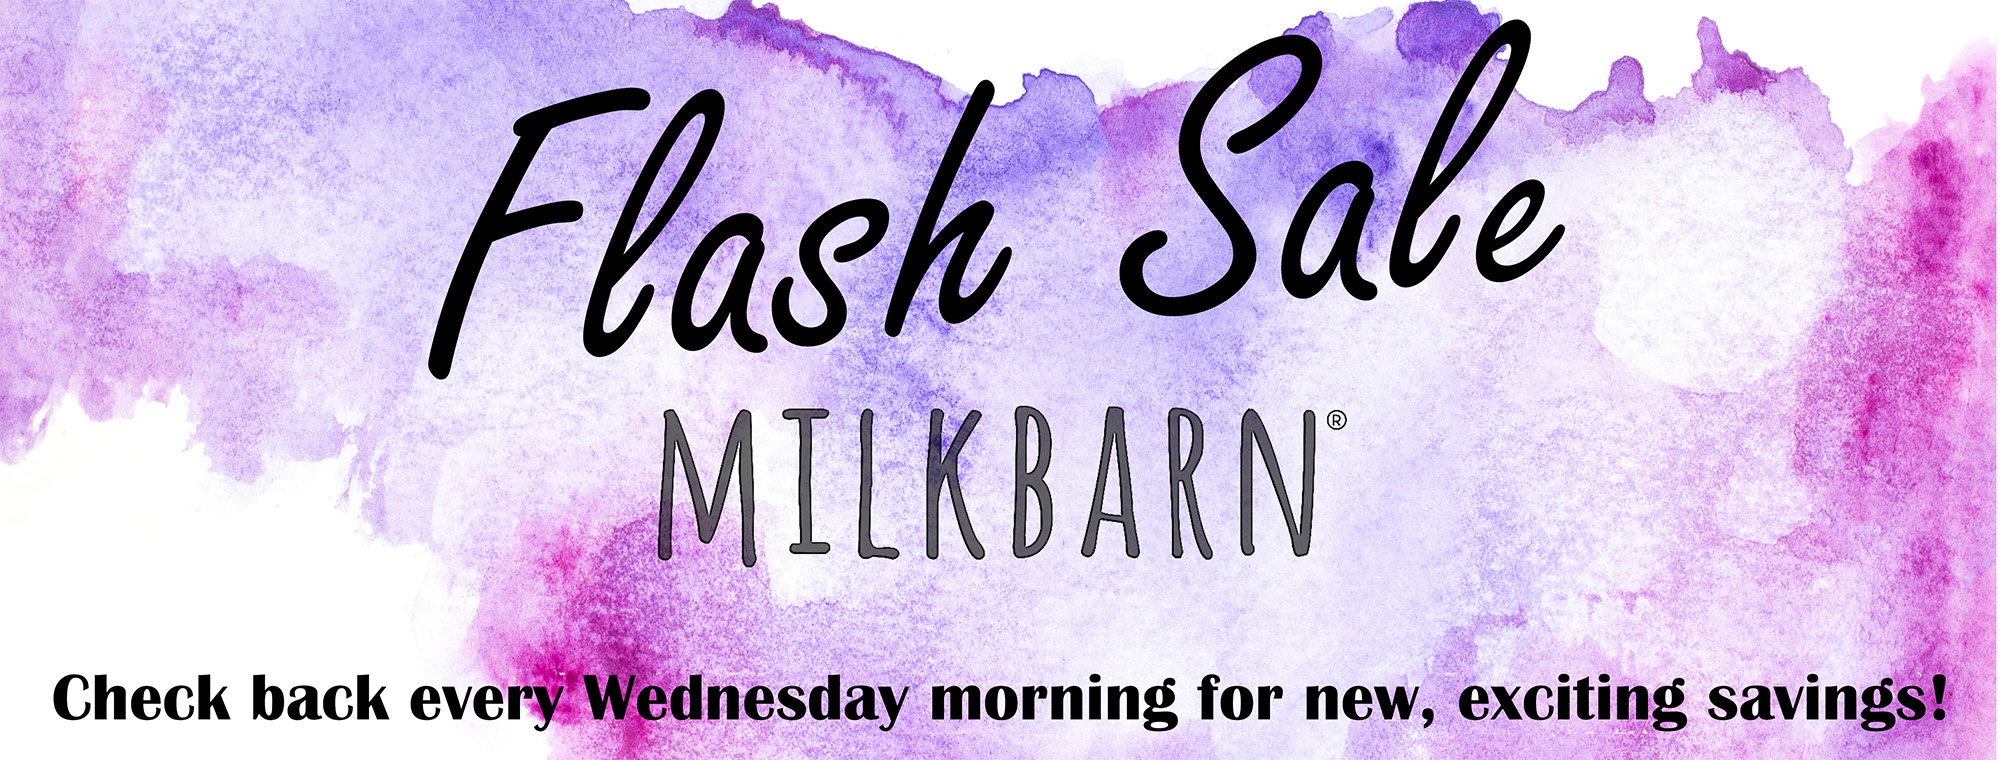 milkbarn flash sale